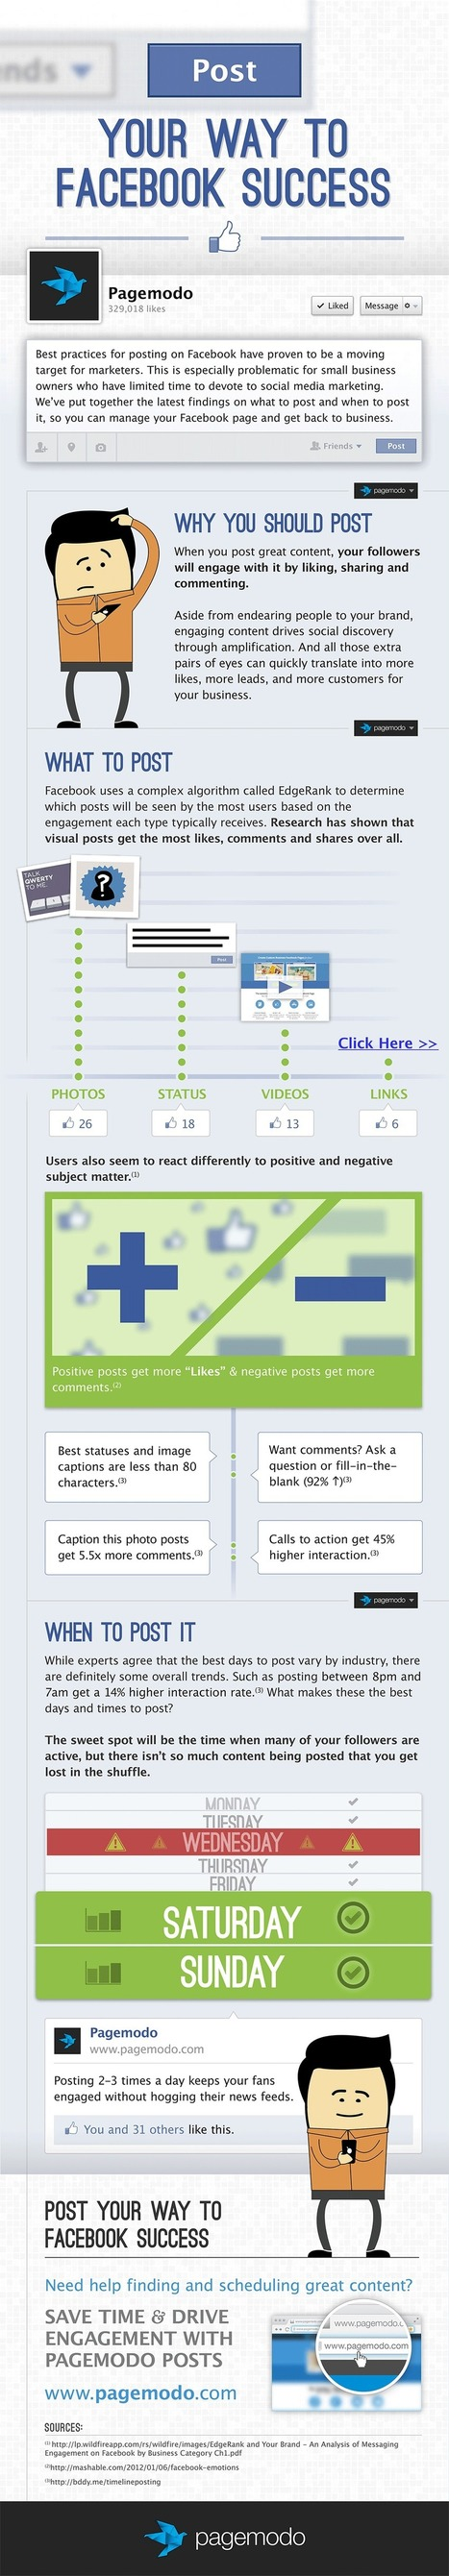 How to Post Your Way to Facebook Success [INFOGRAPHIC] | sabkarsocialmediaInfographics | Scoop.it